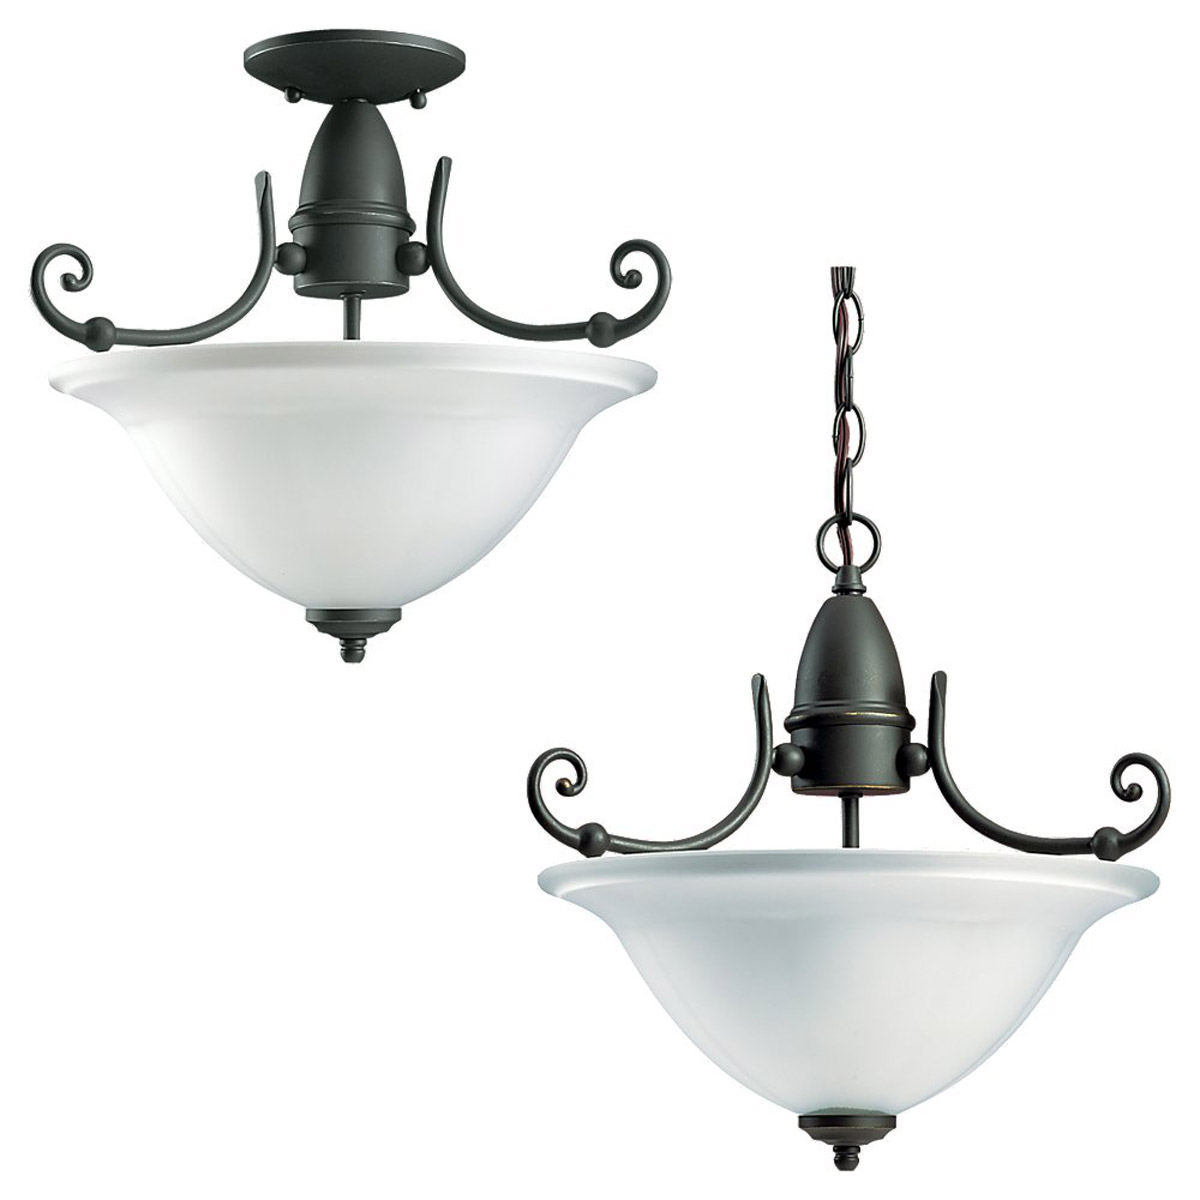 Sea Gull Lighting Canterbury 3 Light Semi-Flush Mount in Antique Bronze 59051BLE-71